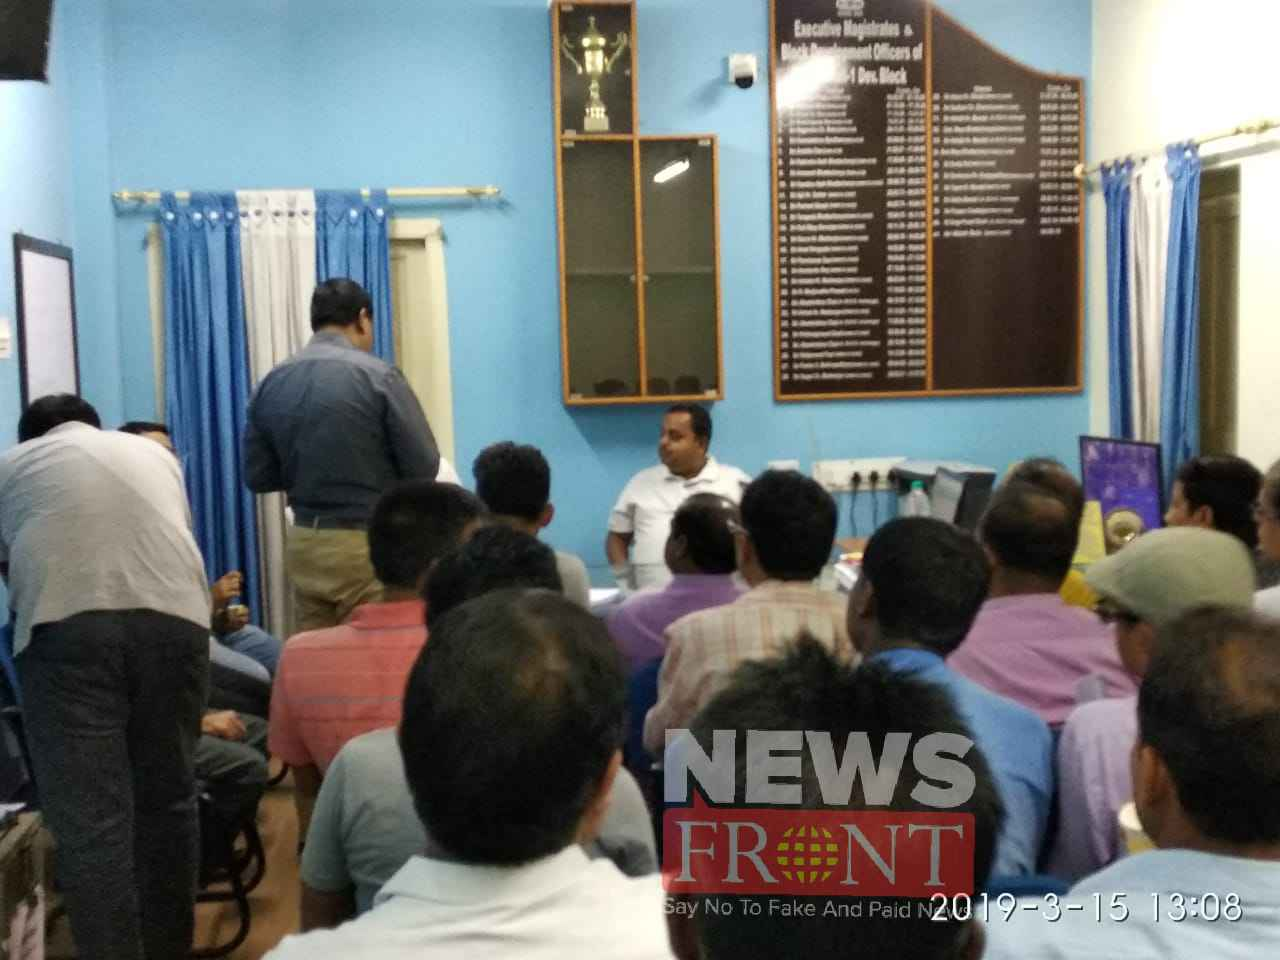 Emergency meeting on election code of conduct at purbasthali